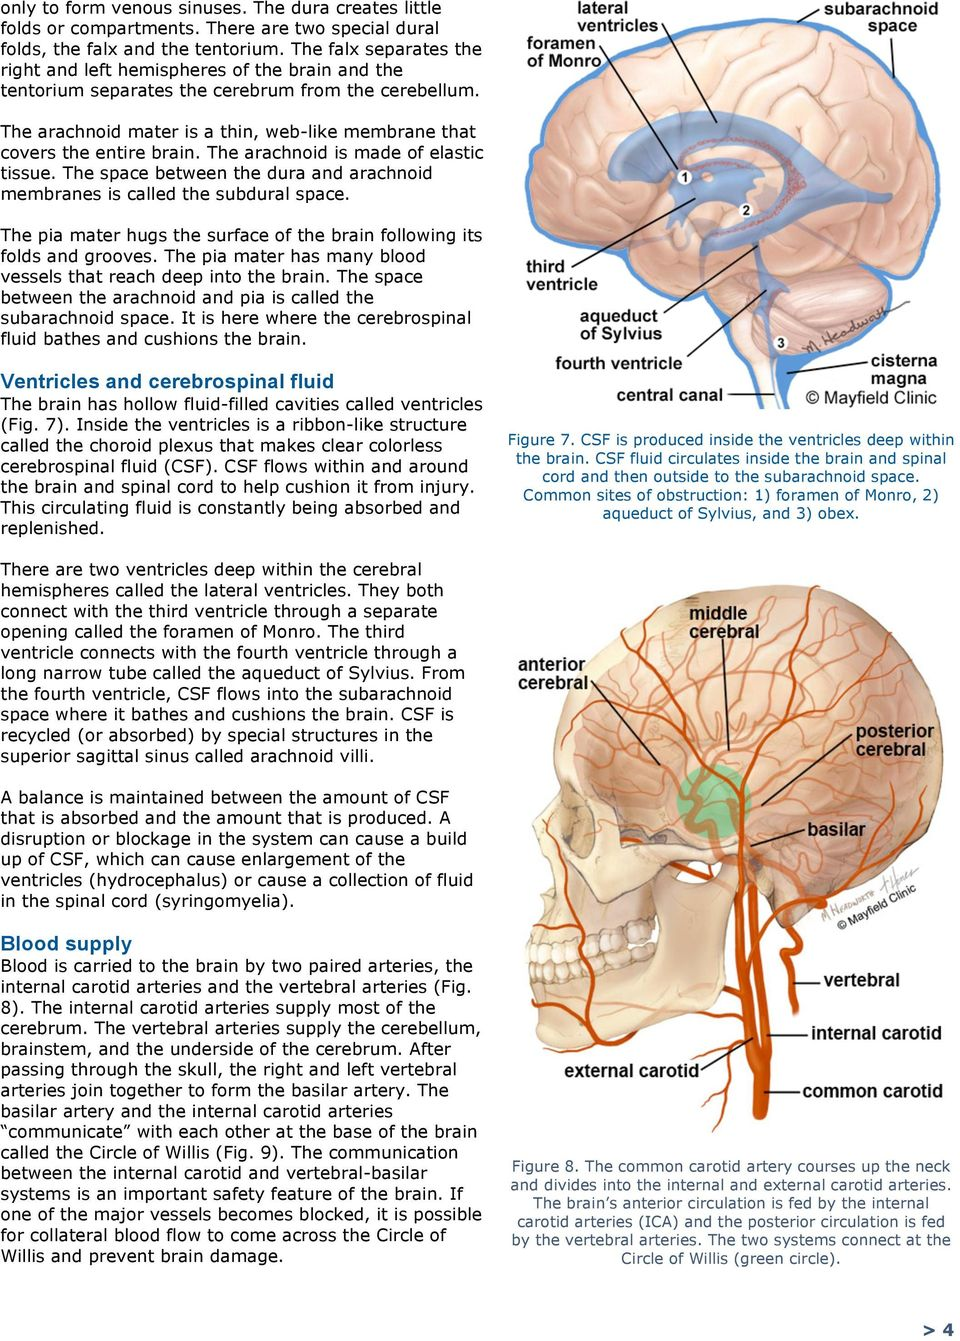 The arachnoid mater is a thin, web-like membrane that covers the entire brain. The arachnoid is made of elastic tissue. The space between the dura and arachnoid membranes is called the subdural space.